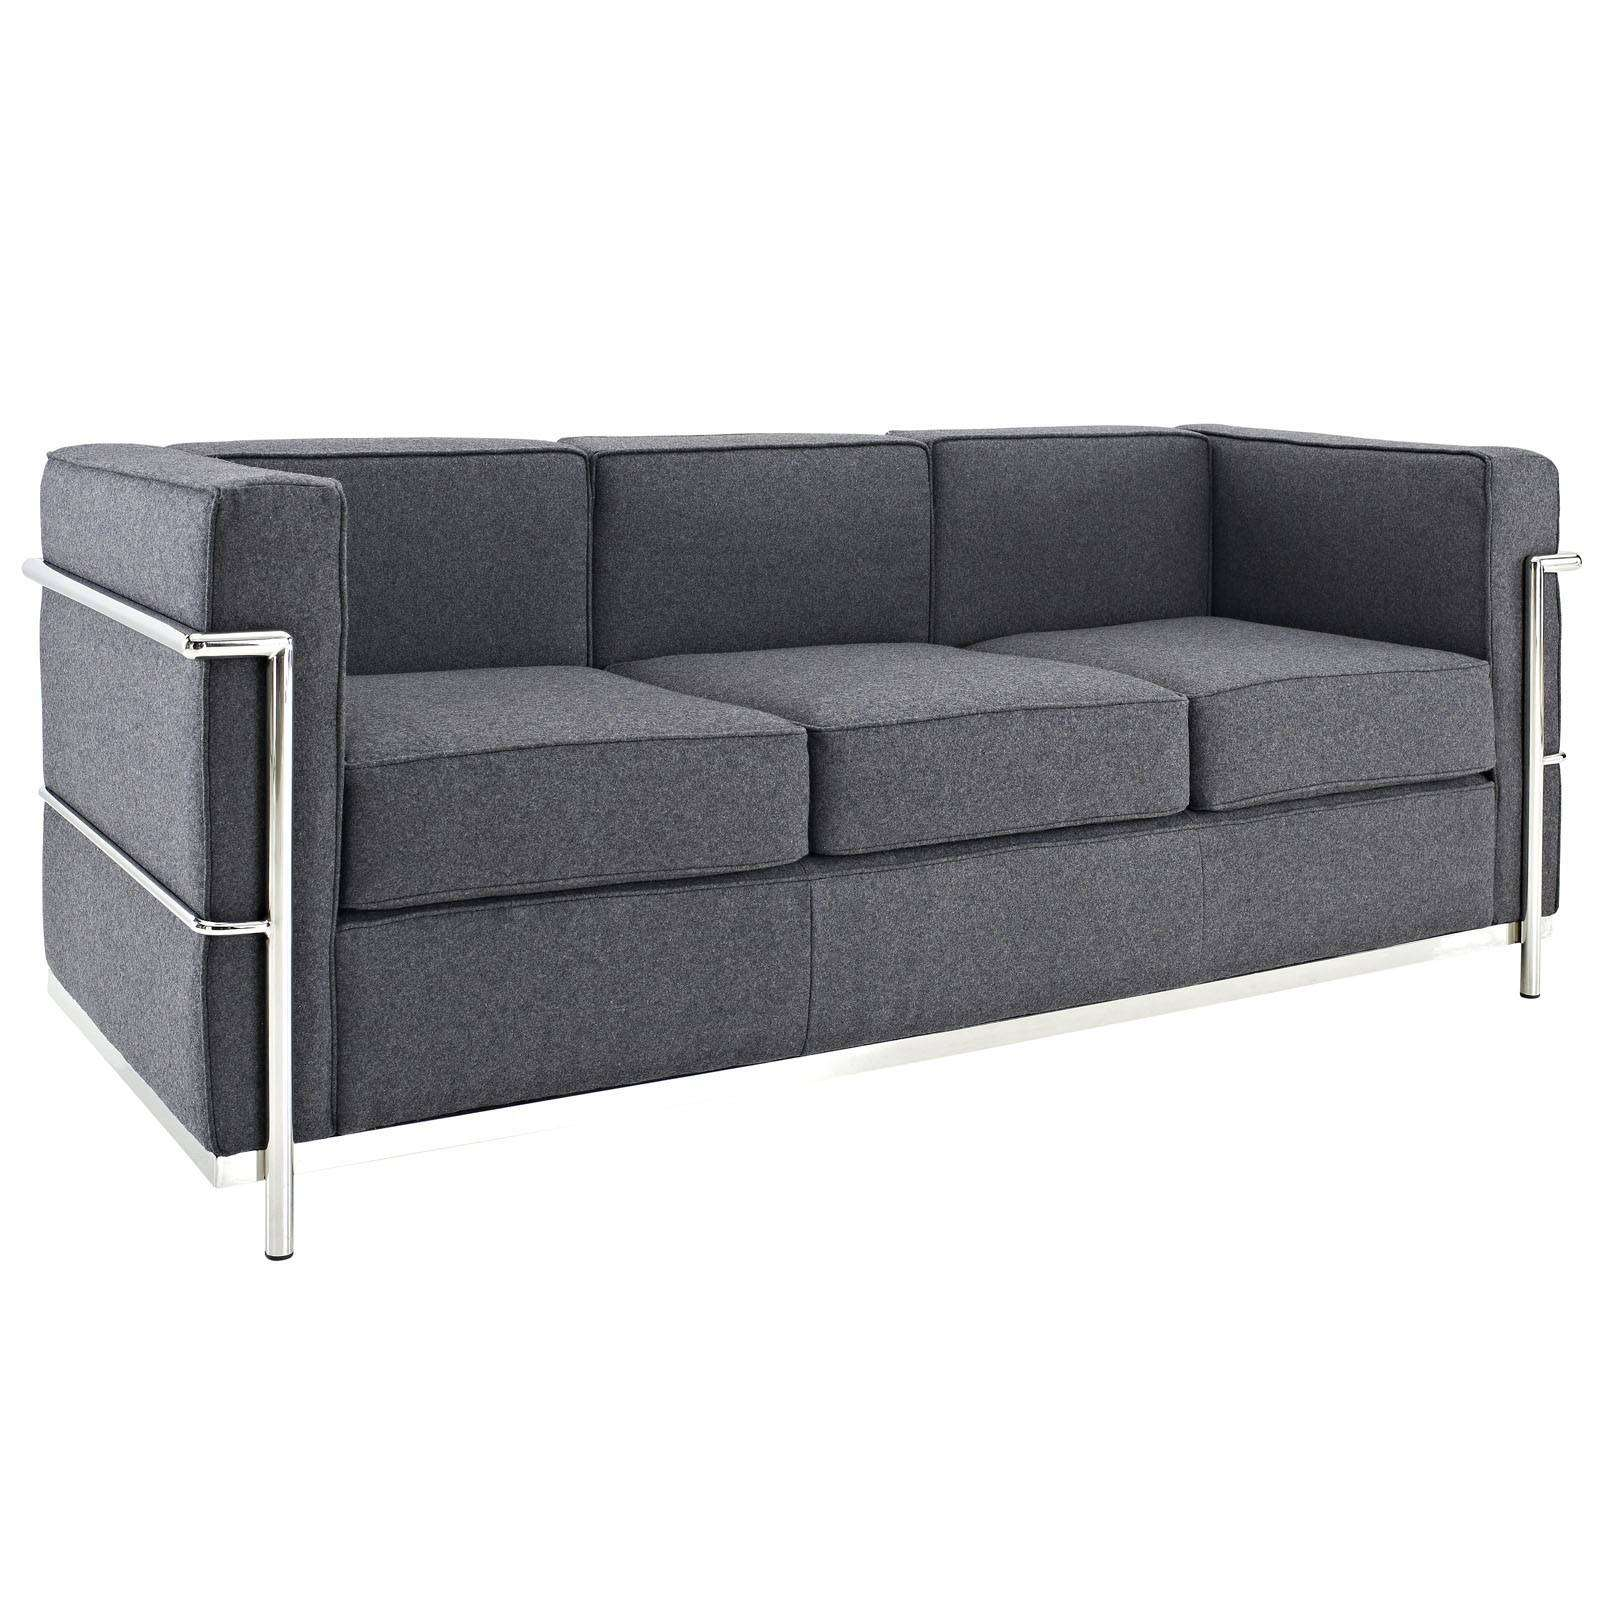 le corbusier style lc2 sofa couch wool. Black Bedroom Furniture Sets. Home Design Ideas